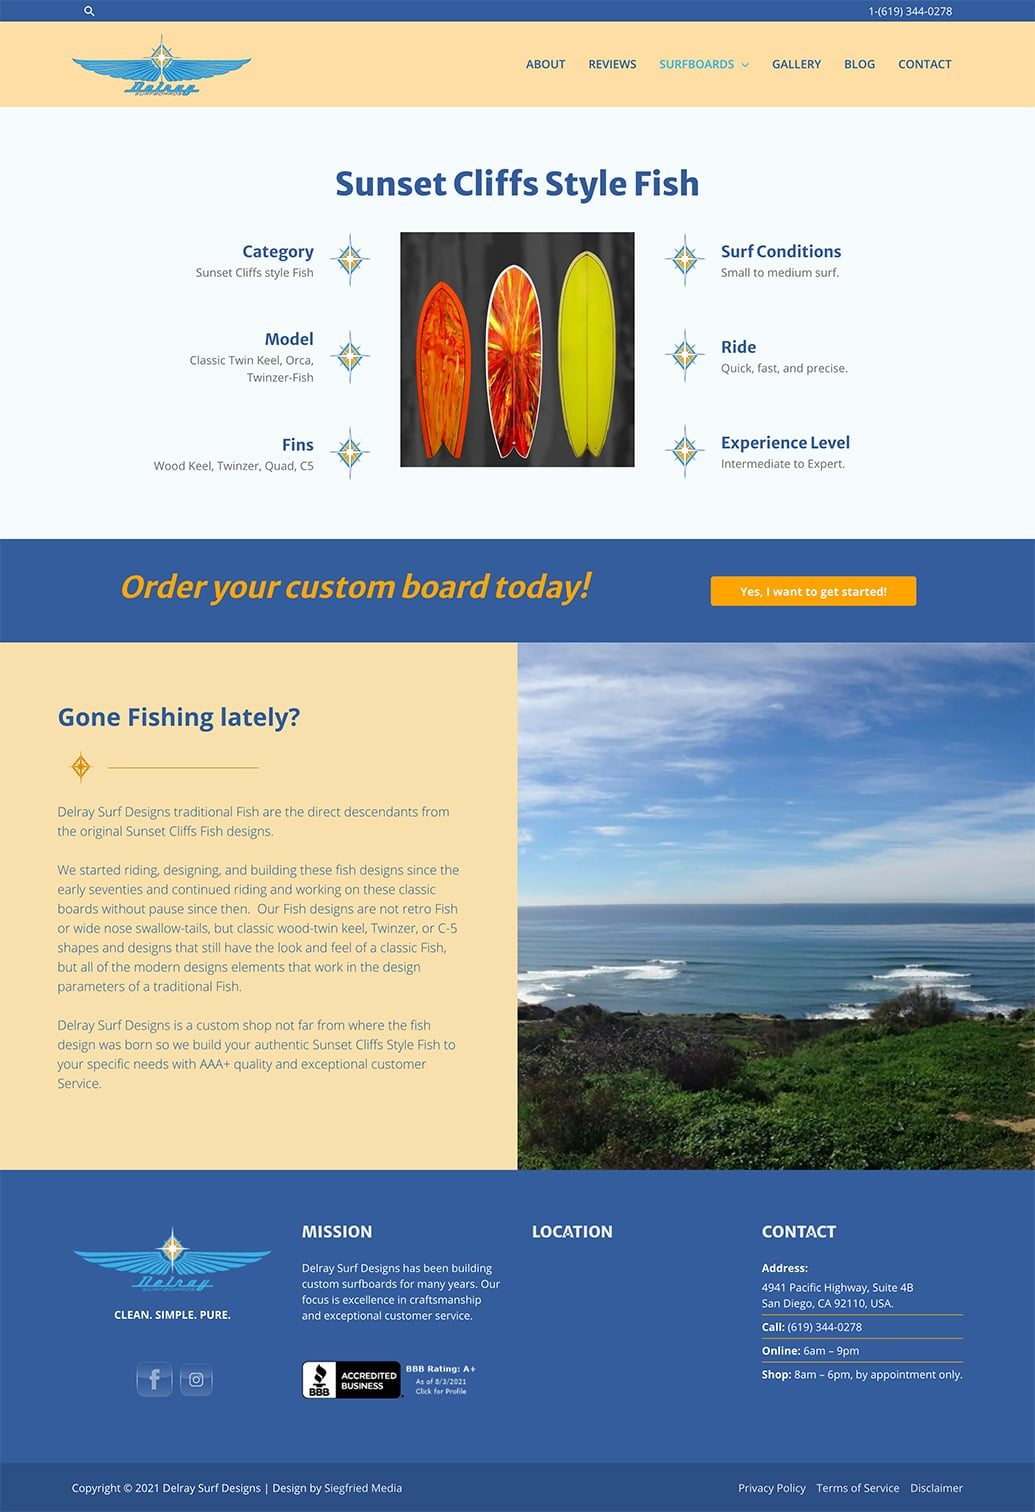 The webpage for sunset cliffs style fish surfboards